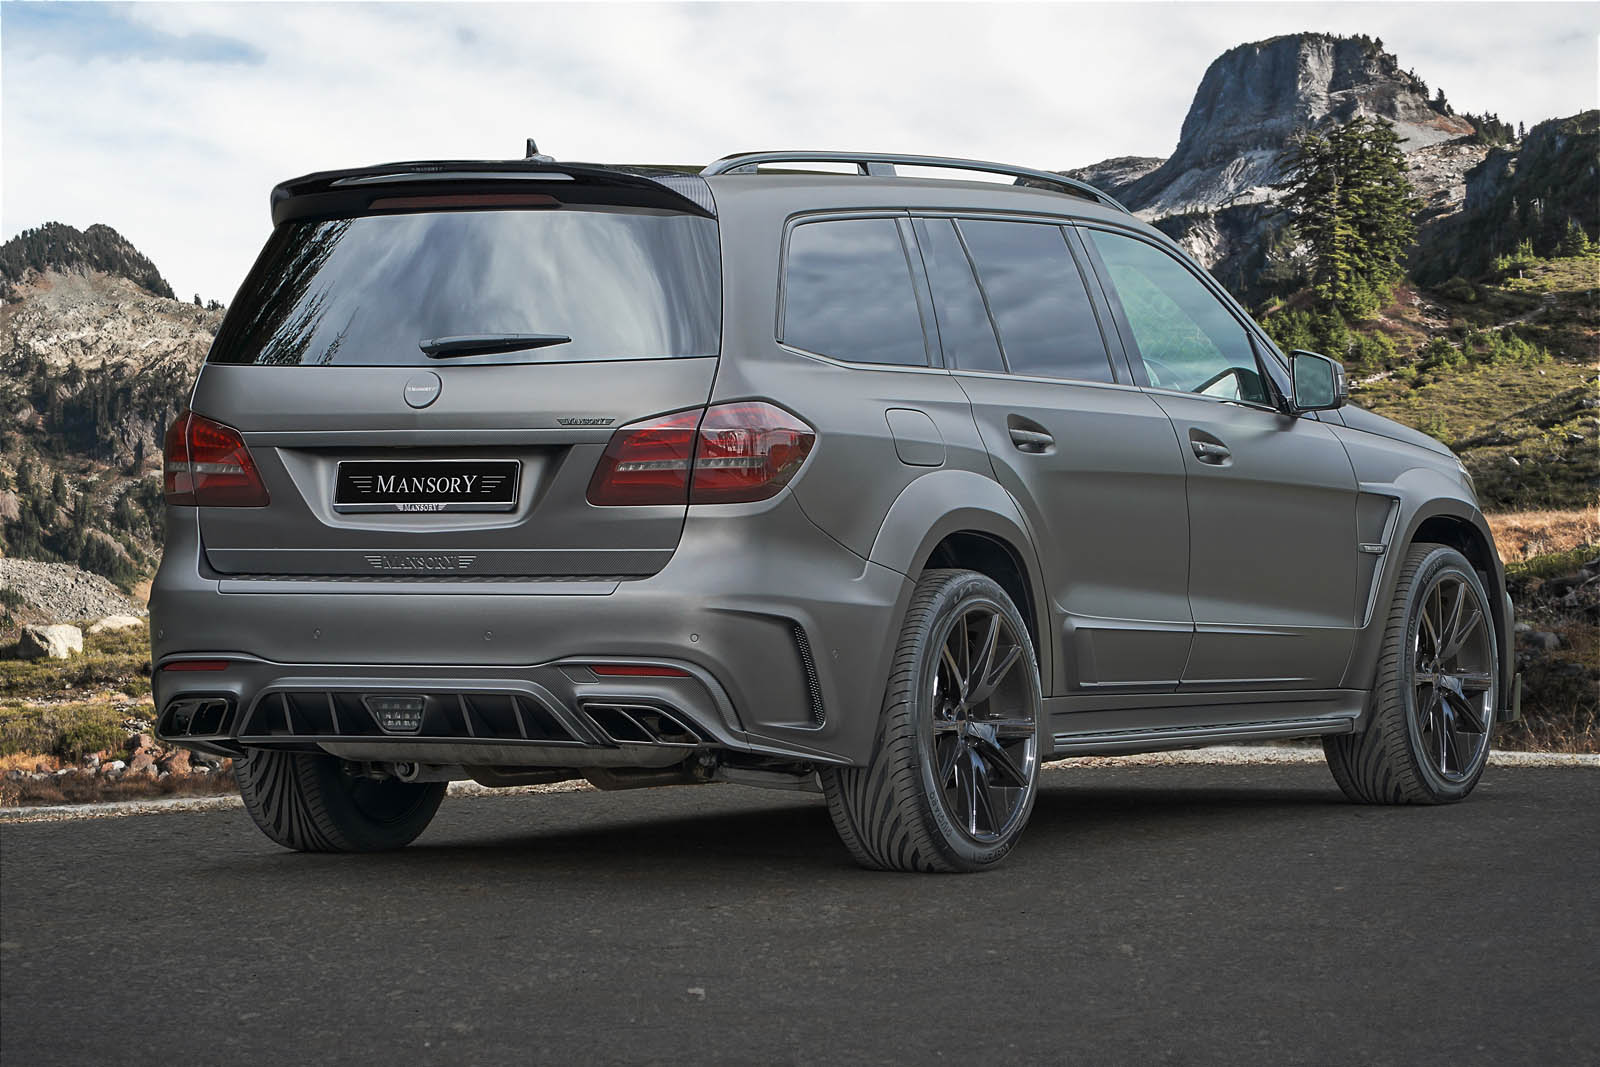 Does Mercedes Benz Gls Have An Amg Package